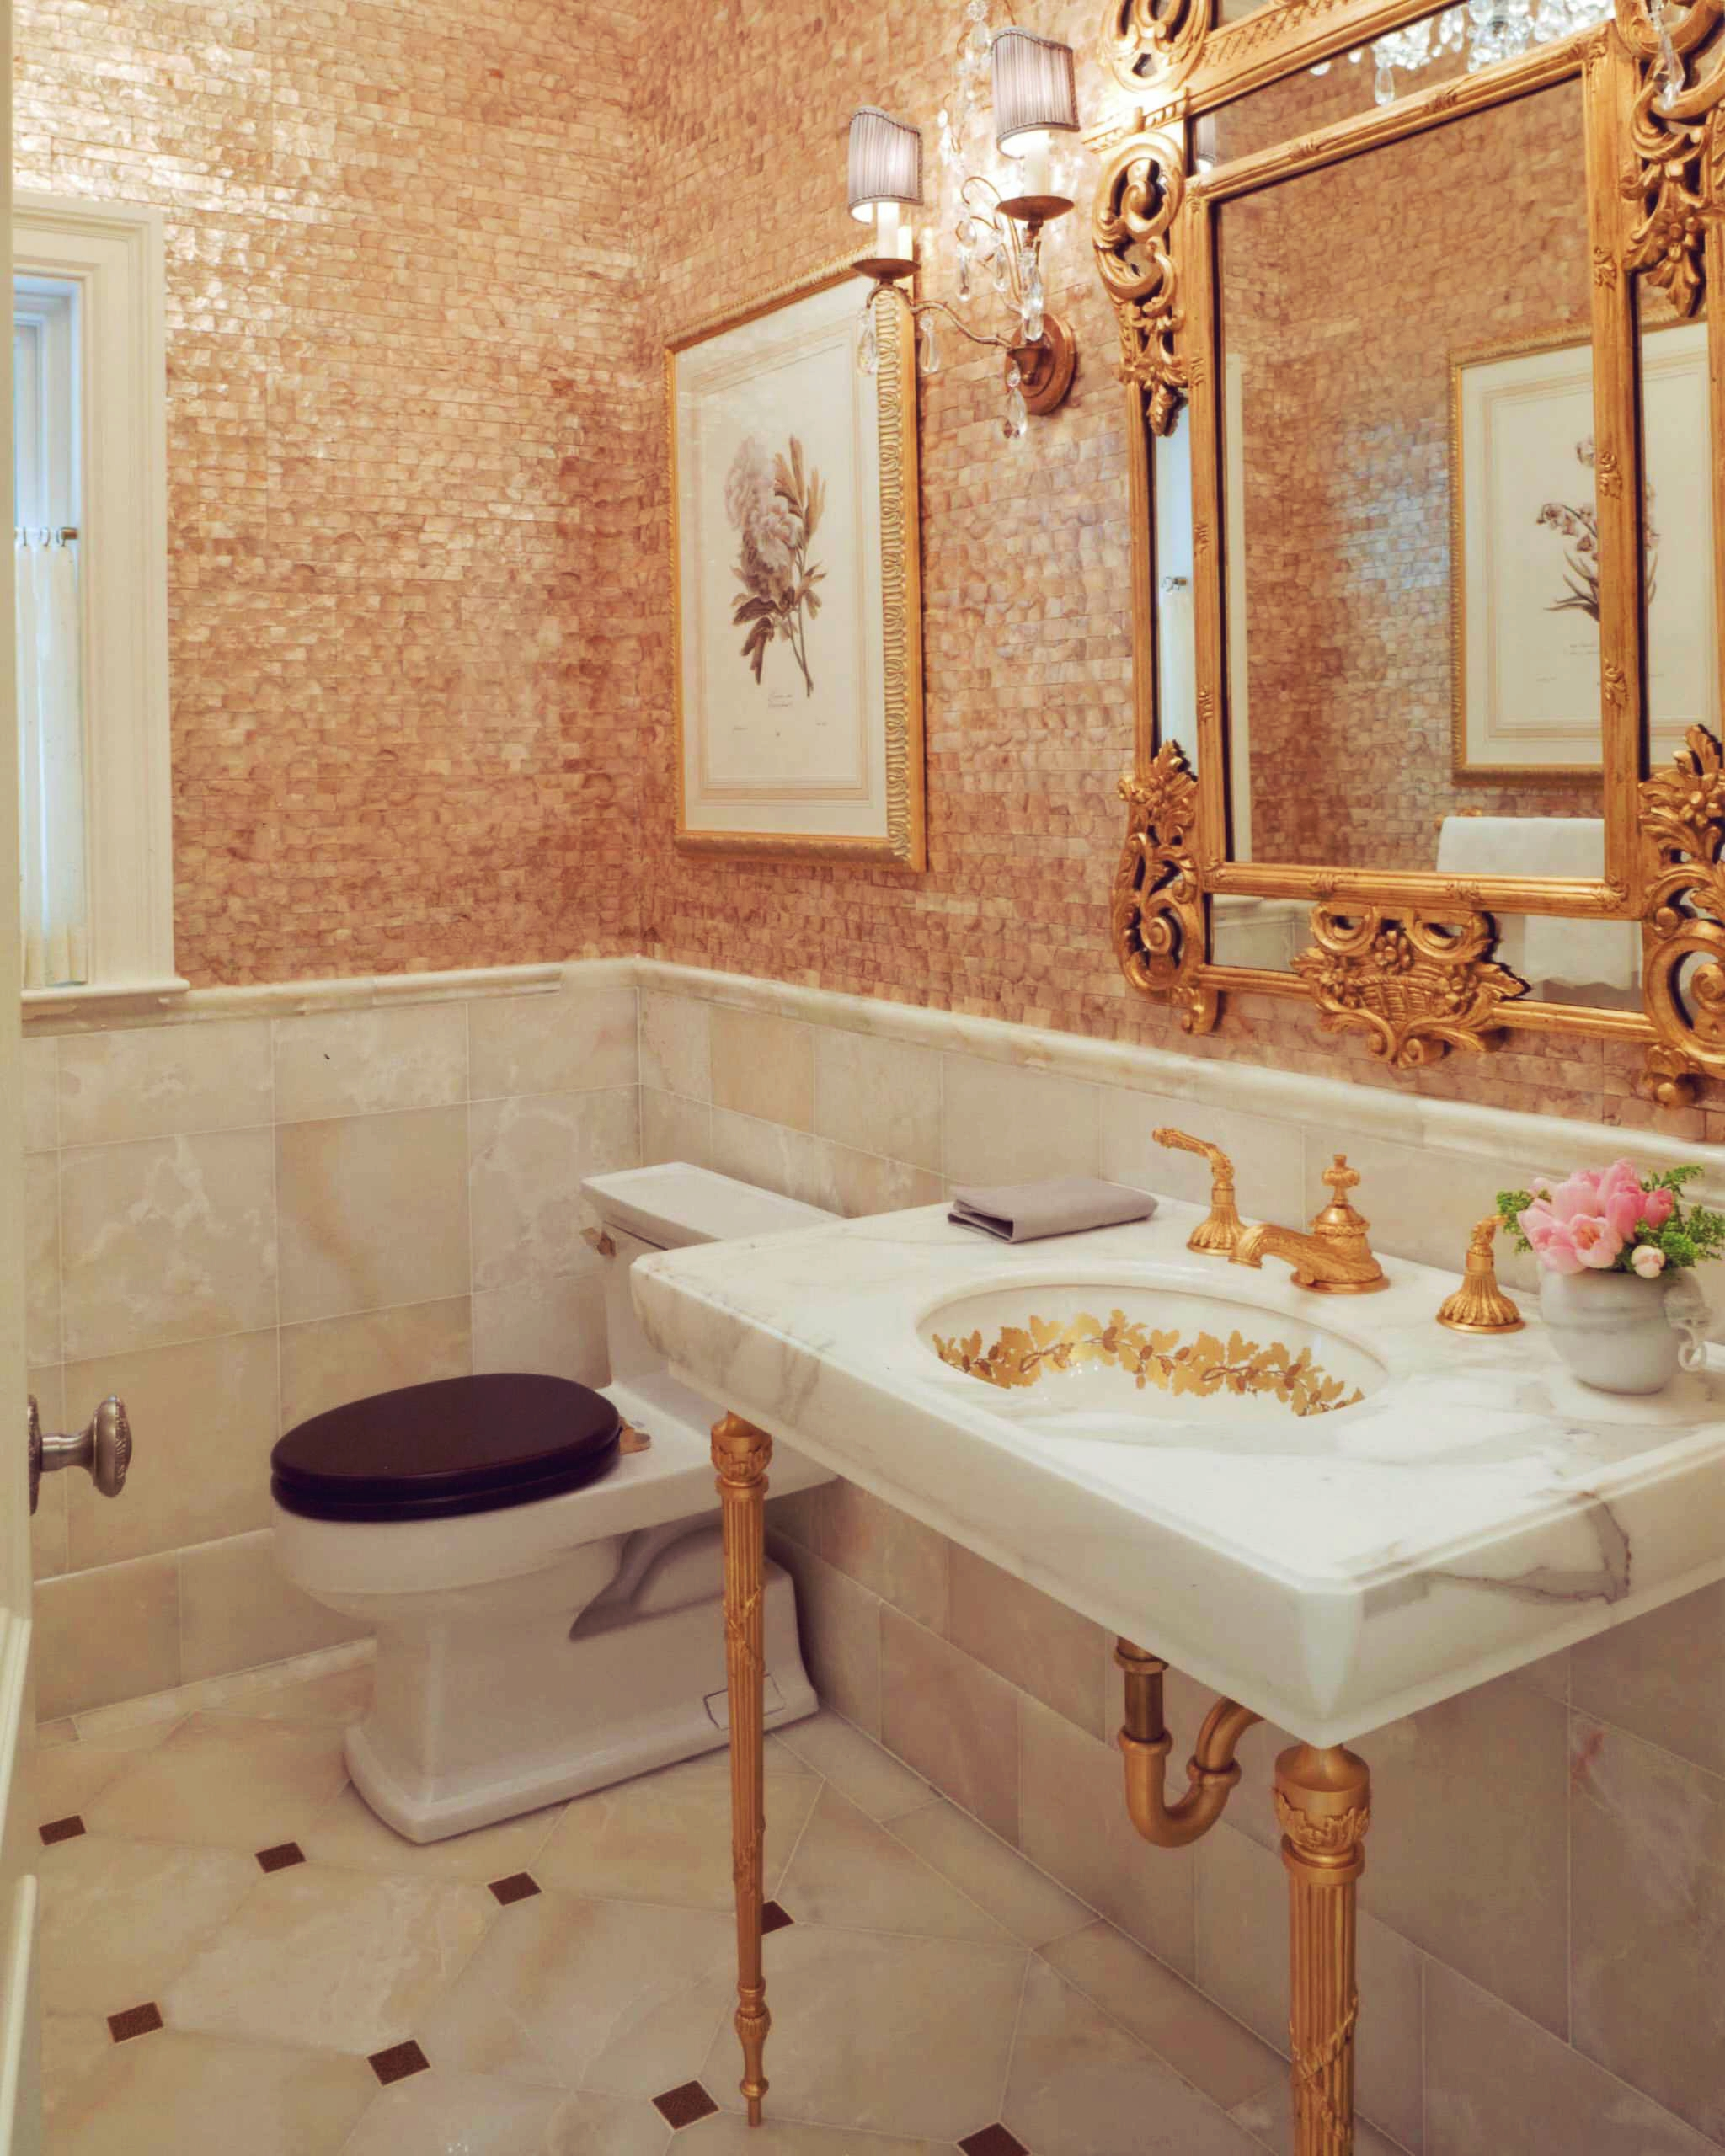 3 secrets to french decorating versailles inspired rooms for A bathroom in french